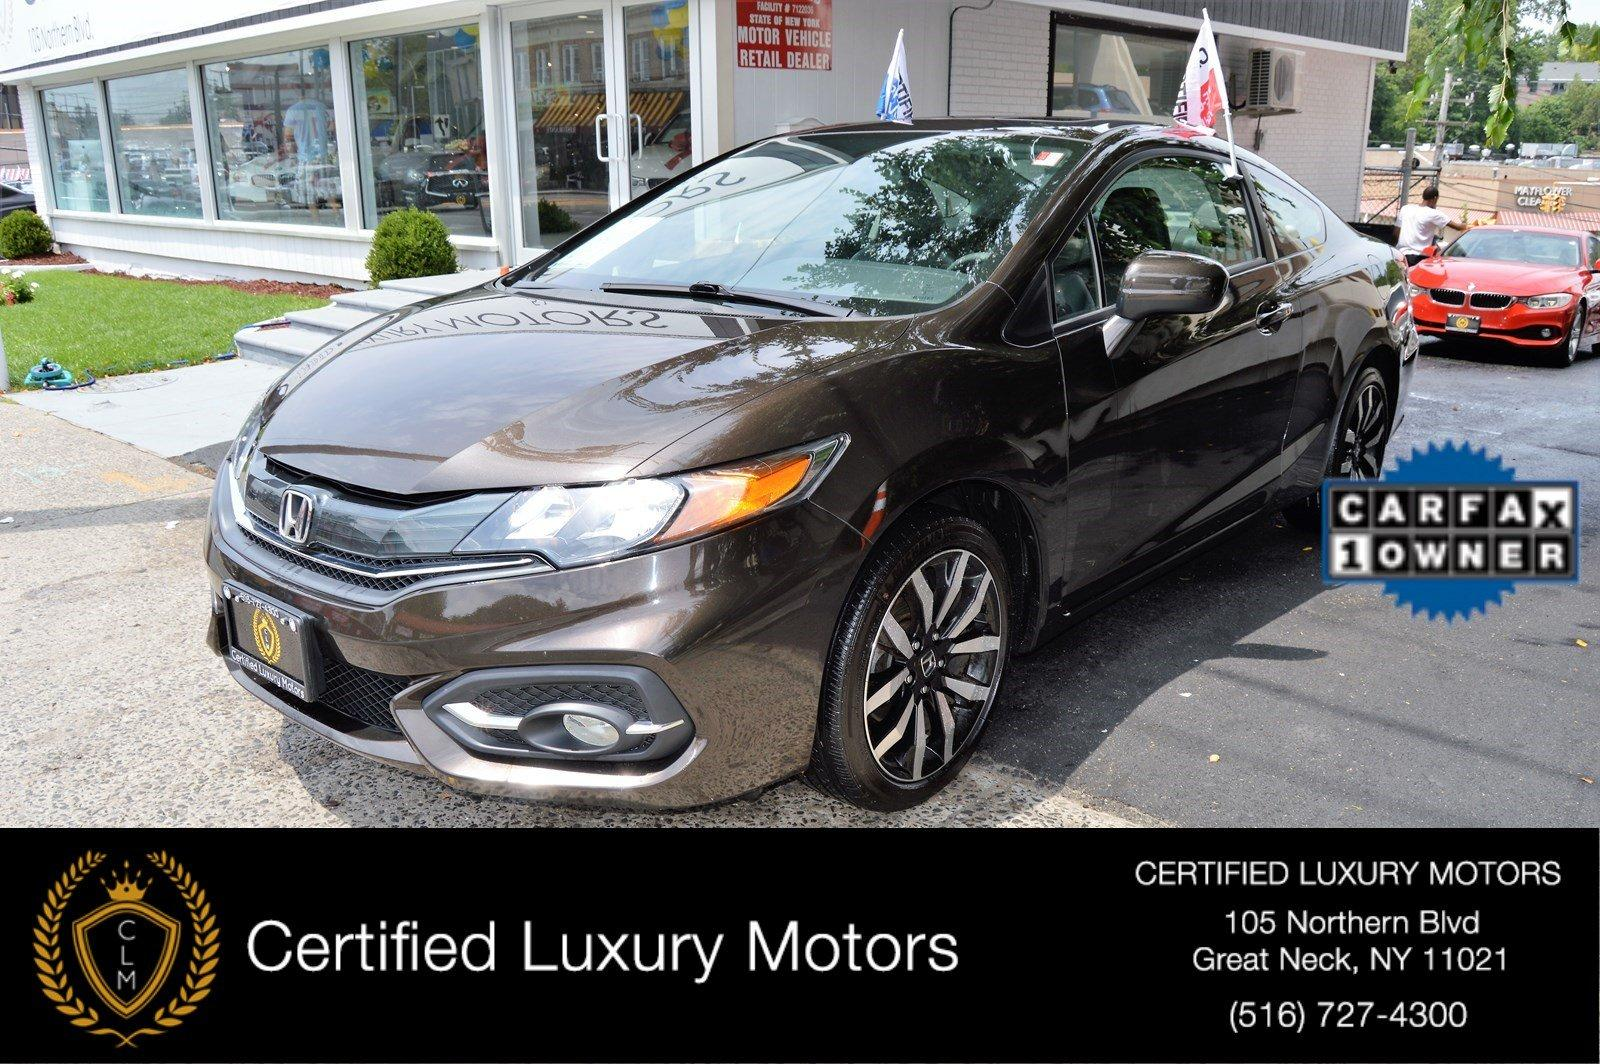 2014 honda civic coupe ex l stock 4973 for sale near for Honda northern blvd